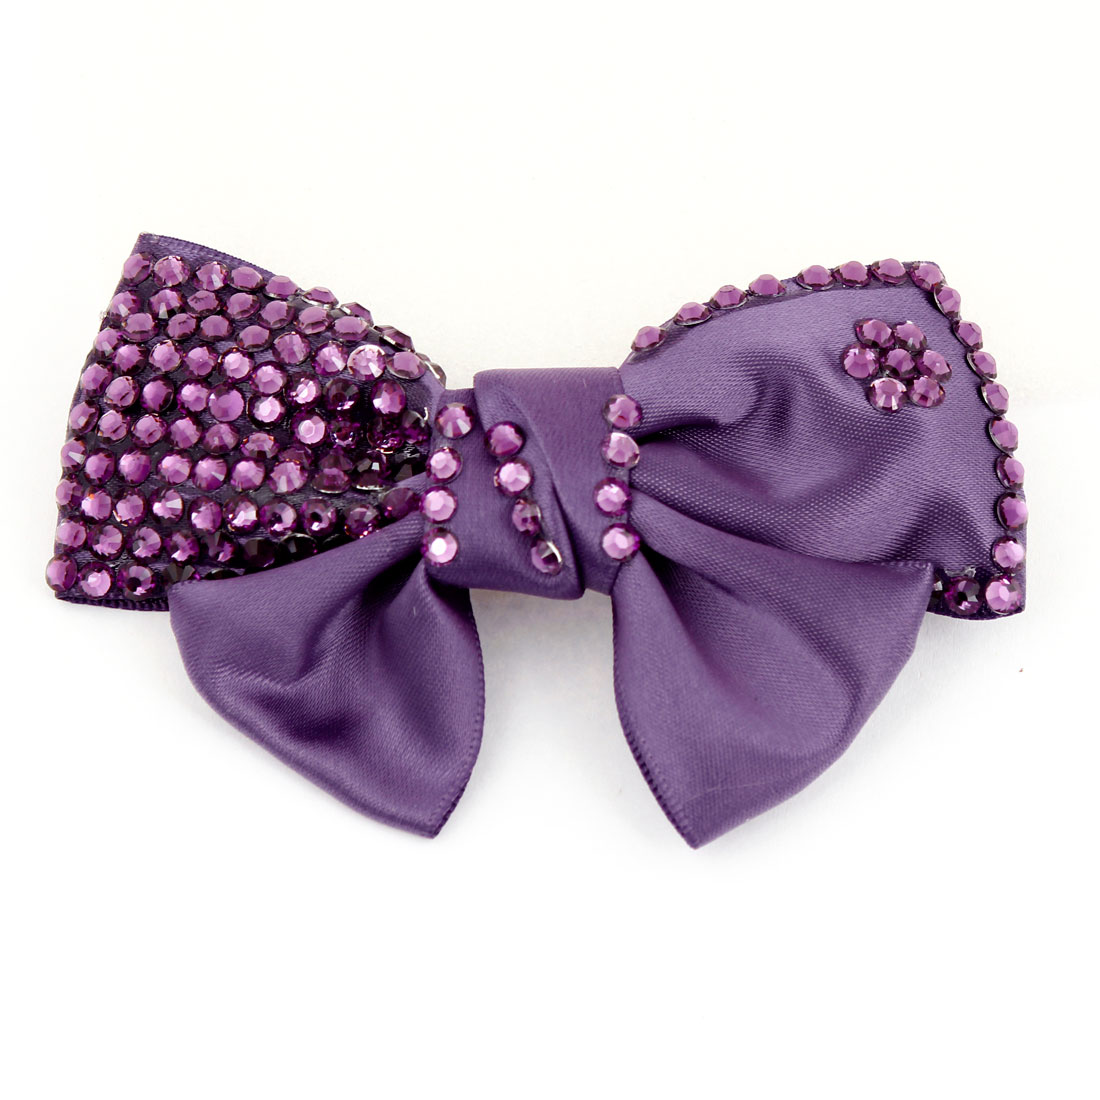 Purple Plastic Shiny Rhinestone Decorated Bowknot Alligator Hair Clip